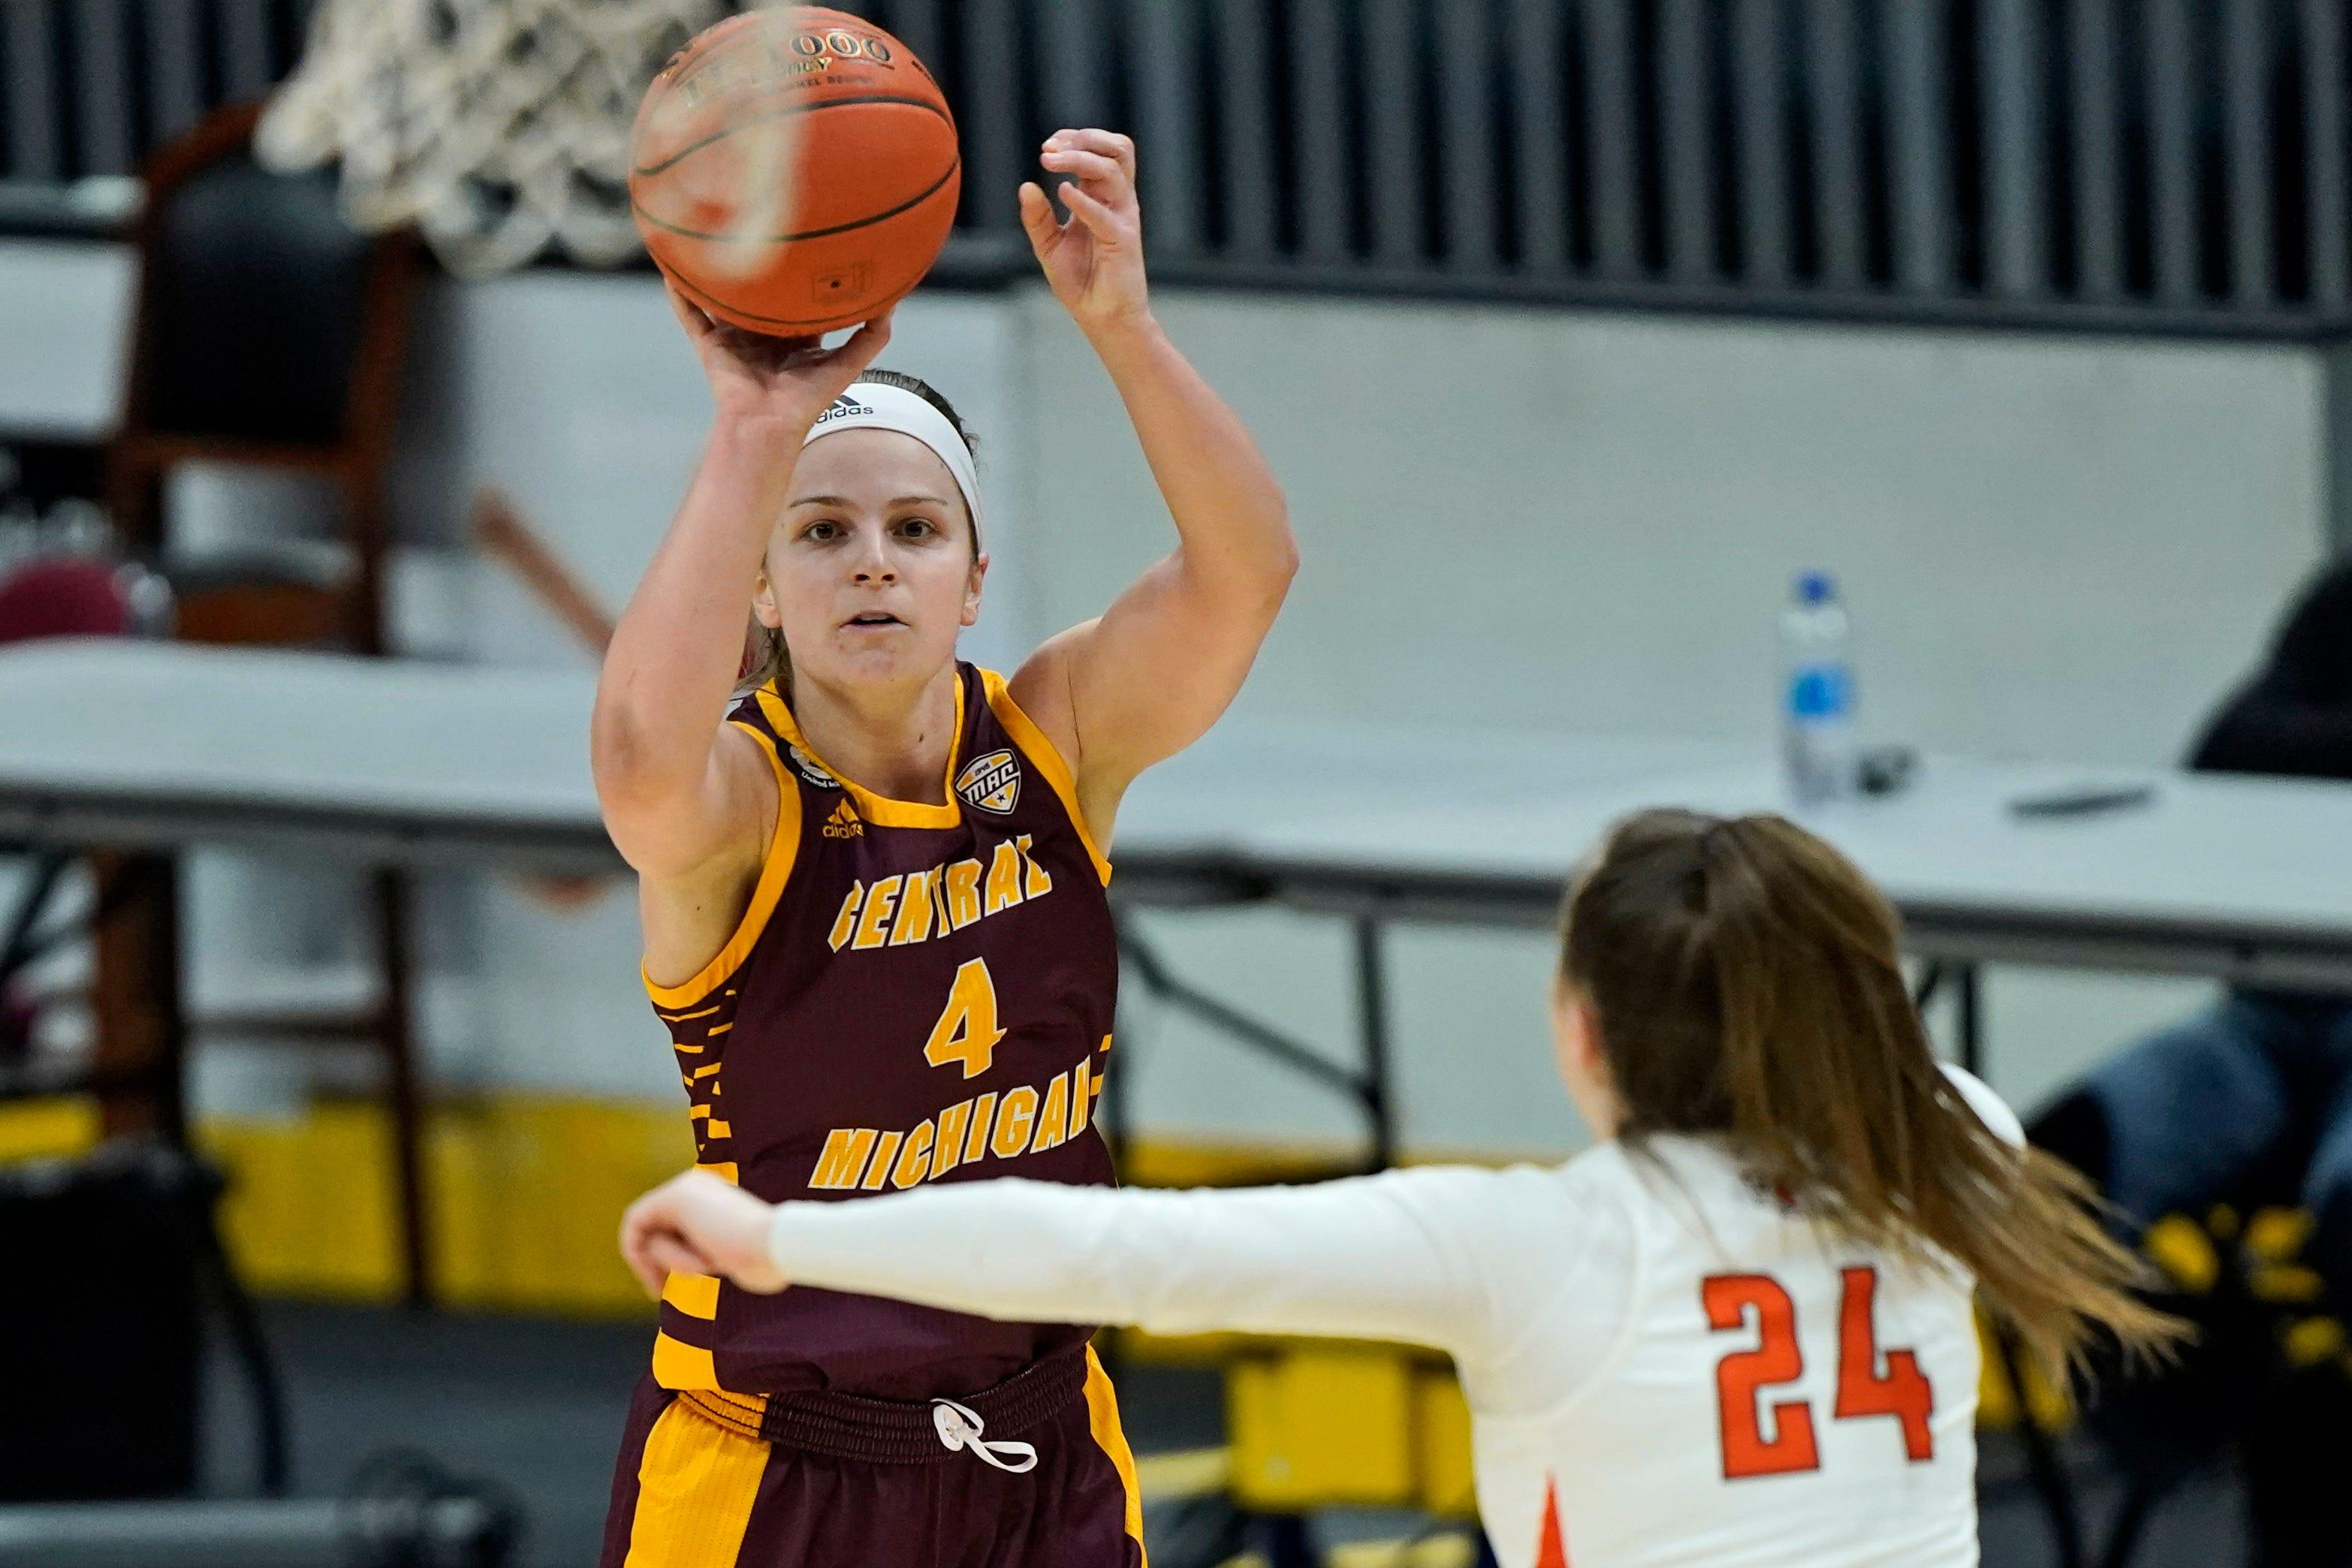 Central Michigan's Maddy Watters shoots over Bowling Green's Kenzie Lewis during the first half of CMU's 77-72 win in the MAC tournament final on Saturday, March 13, 2021, in Cleveland.